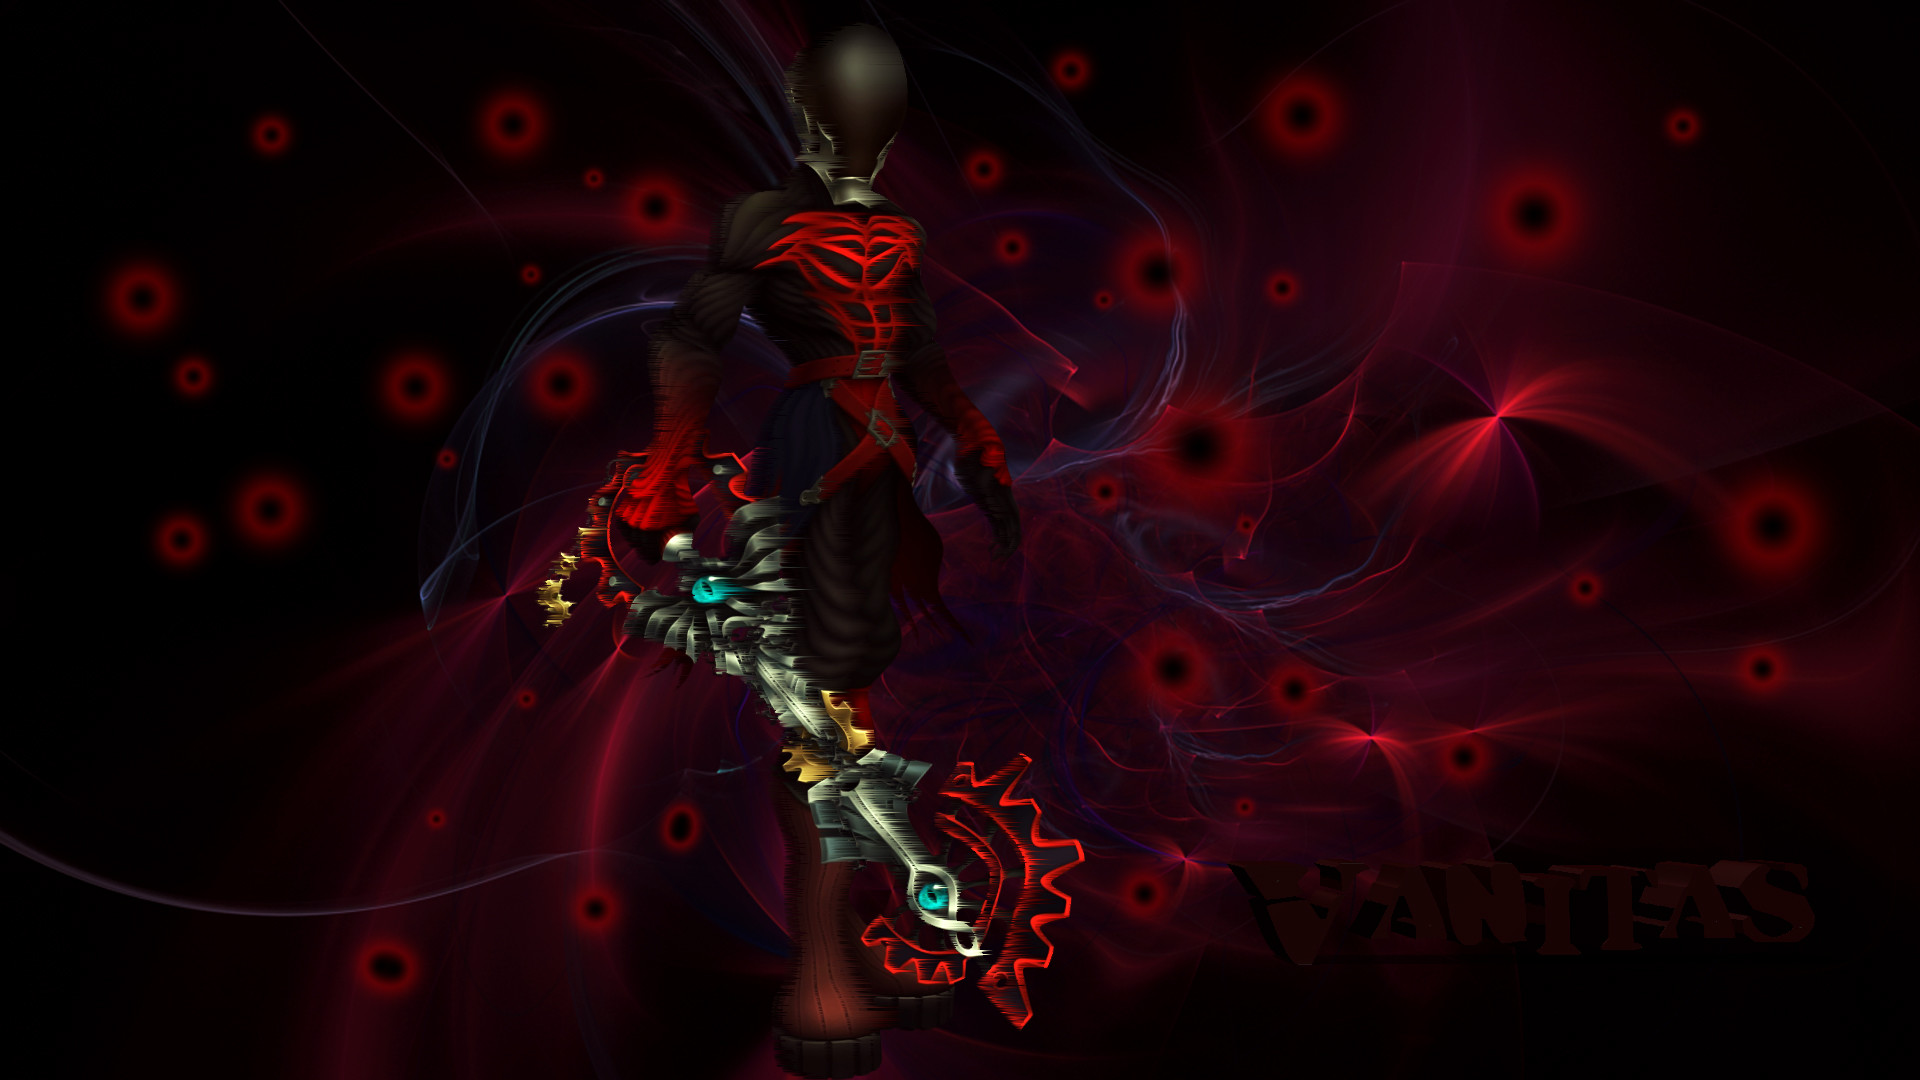 1920x1080 Kingdom Hearts Vanitas Wallpaper by static989 Kingdom Hearts Vanitas  Wallpaper by static989